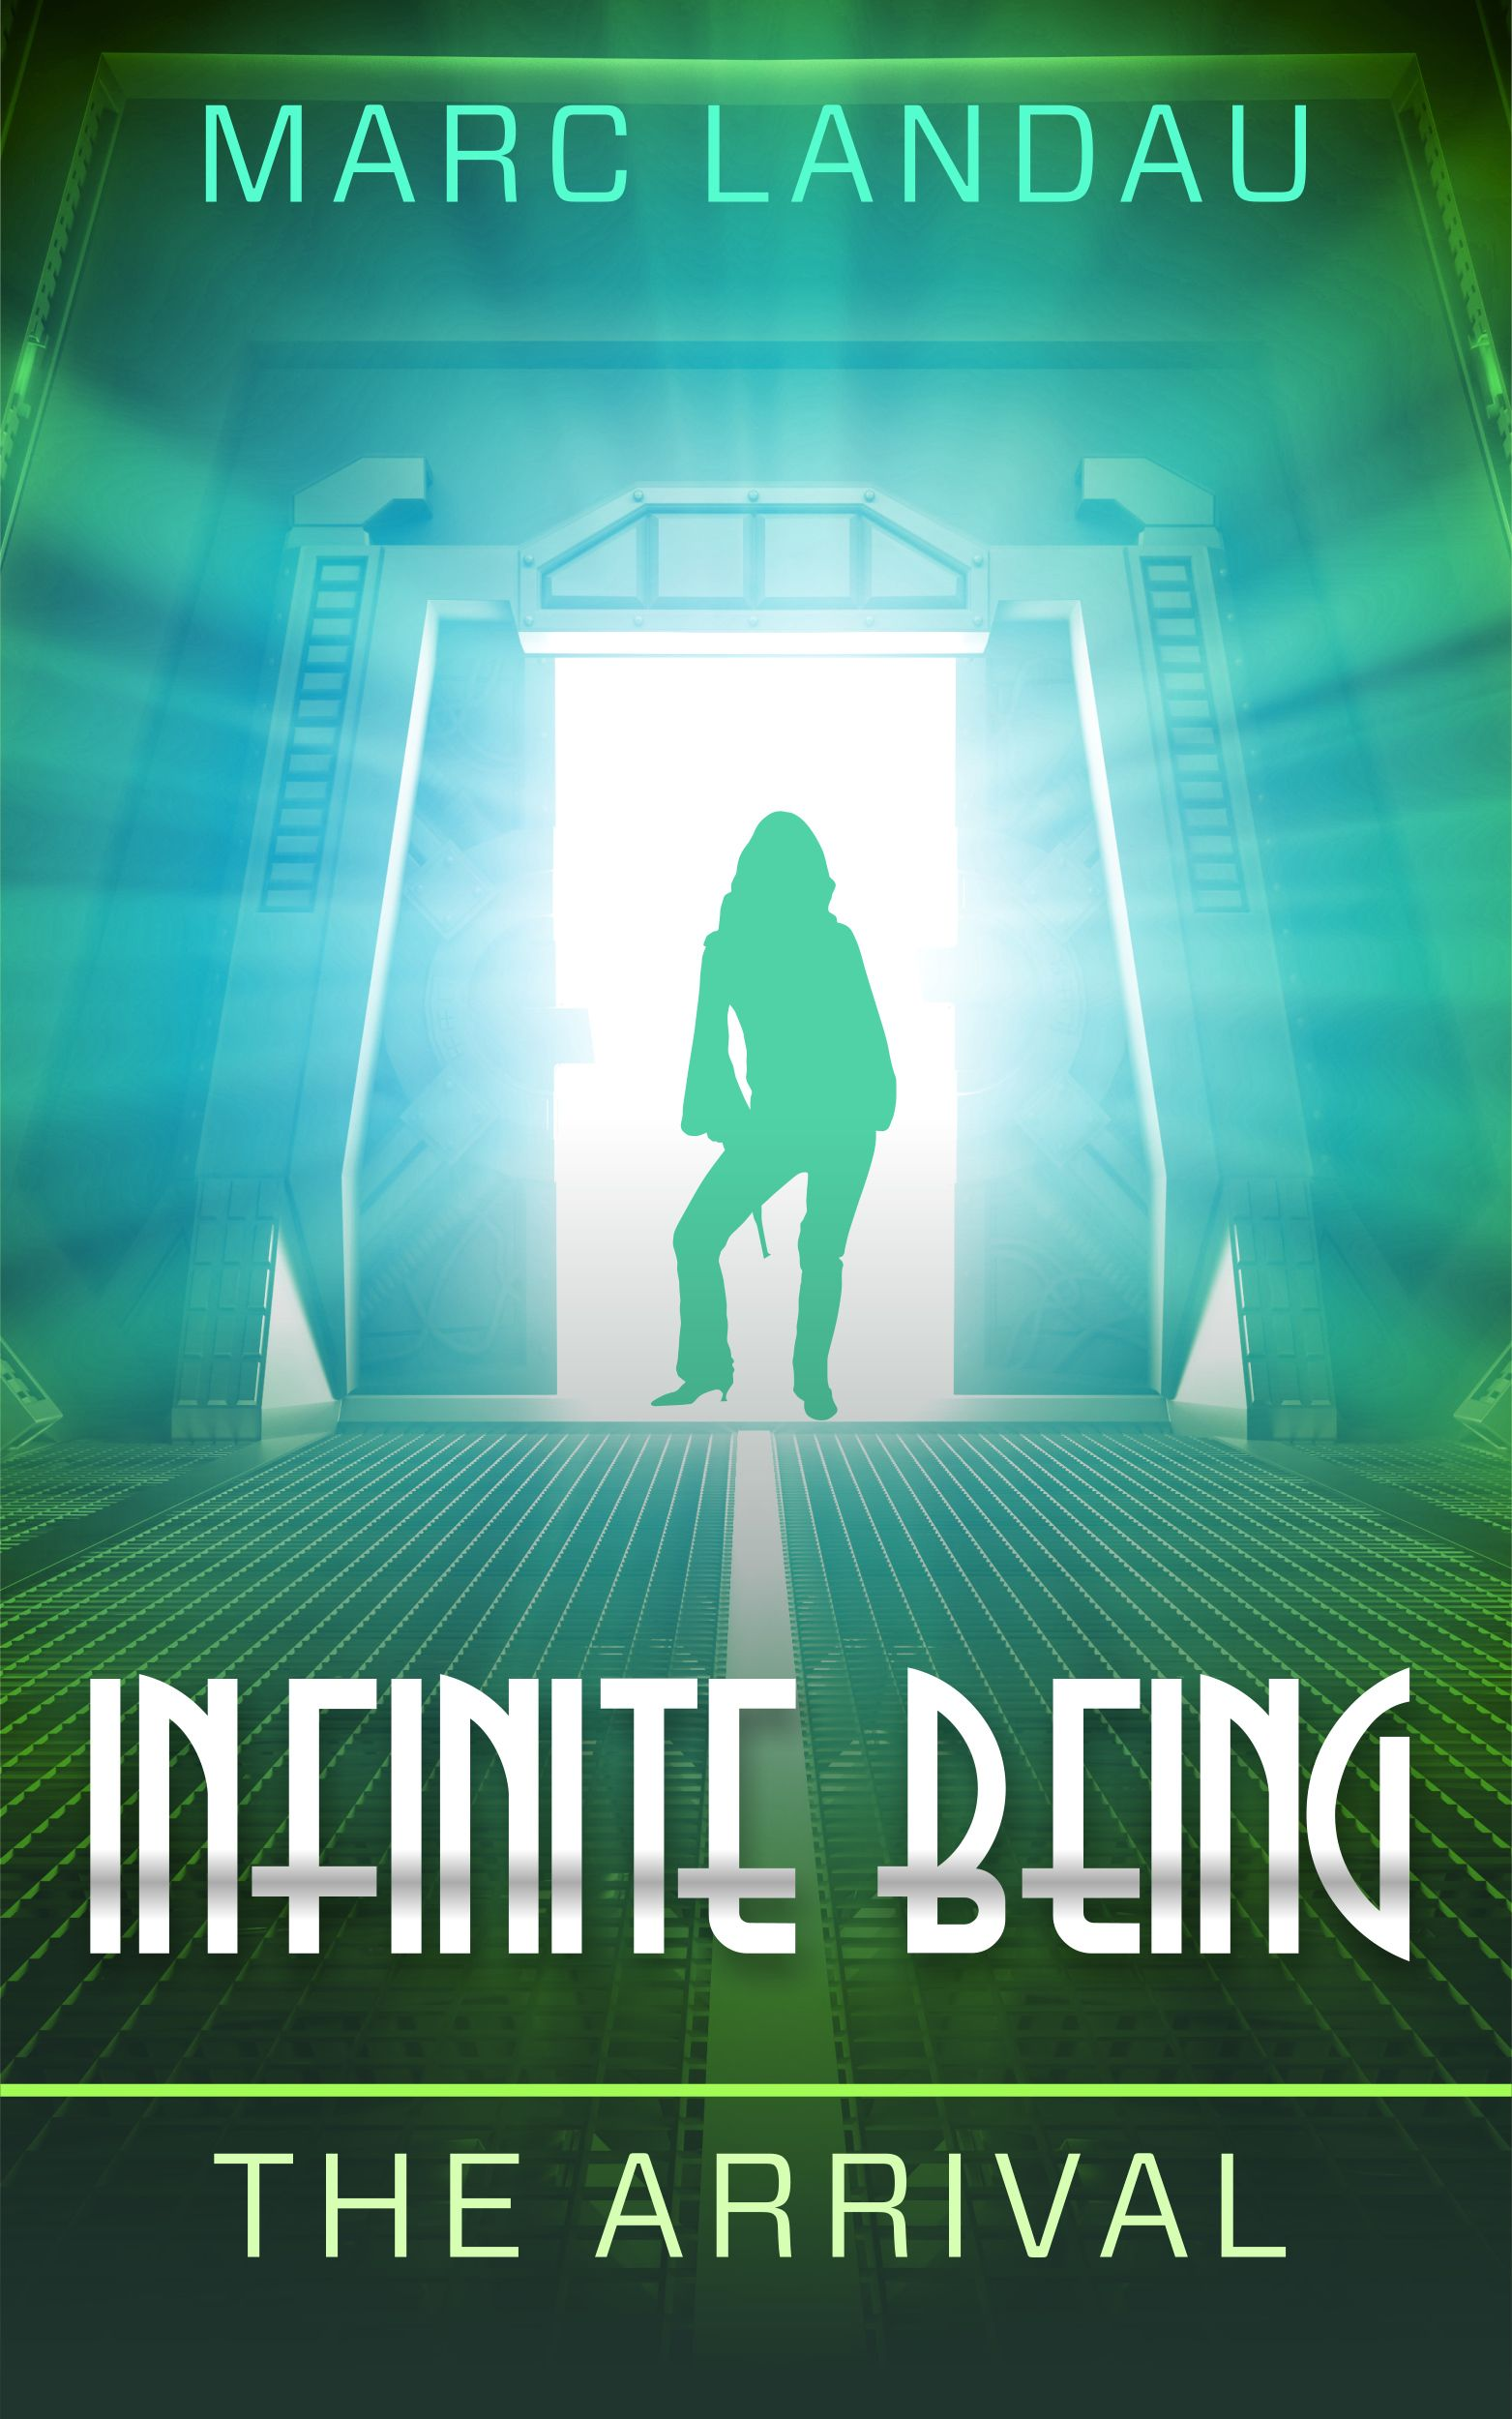 Ebook Deals On Infinite Being: The Arrival By Marc Landau, Free And  Discounted Ebook Deals For Infinite Being: The Arrival And Other Great  Books